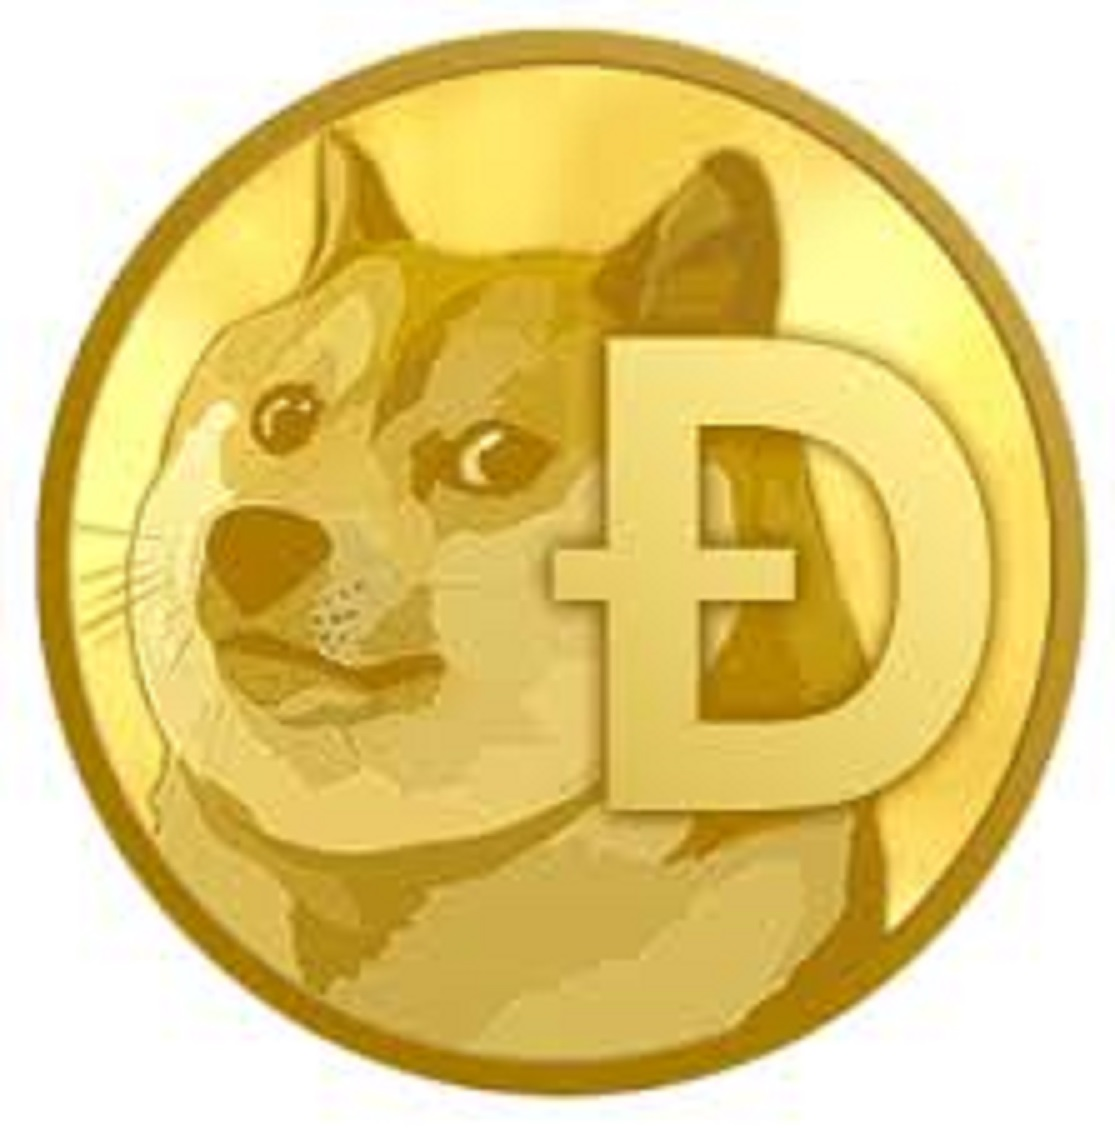 Doge Coin Mining 1.2 TH/s Mining Speed 24 Hours